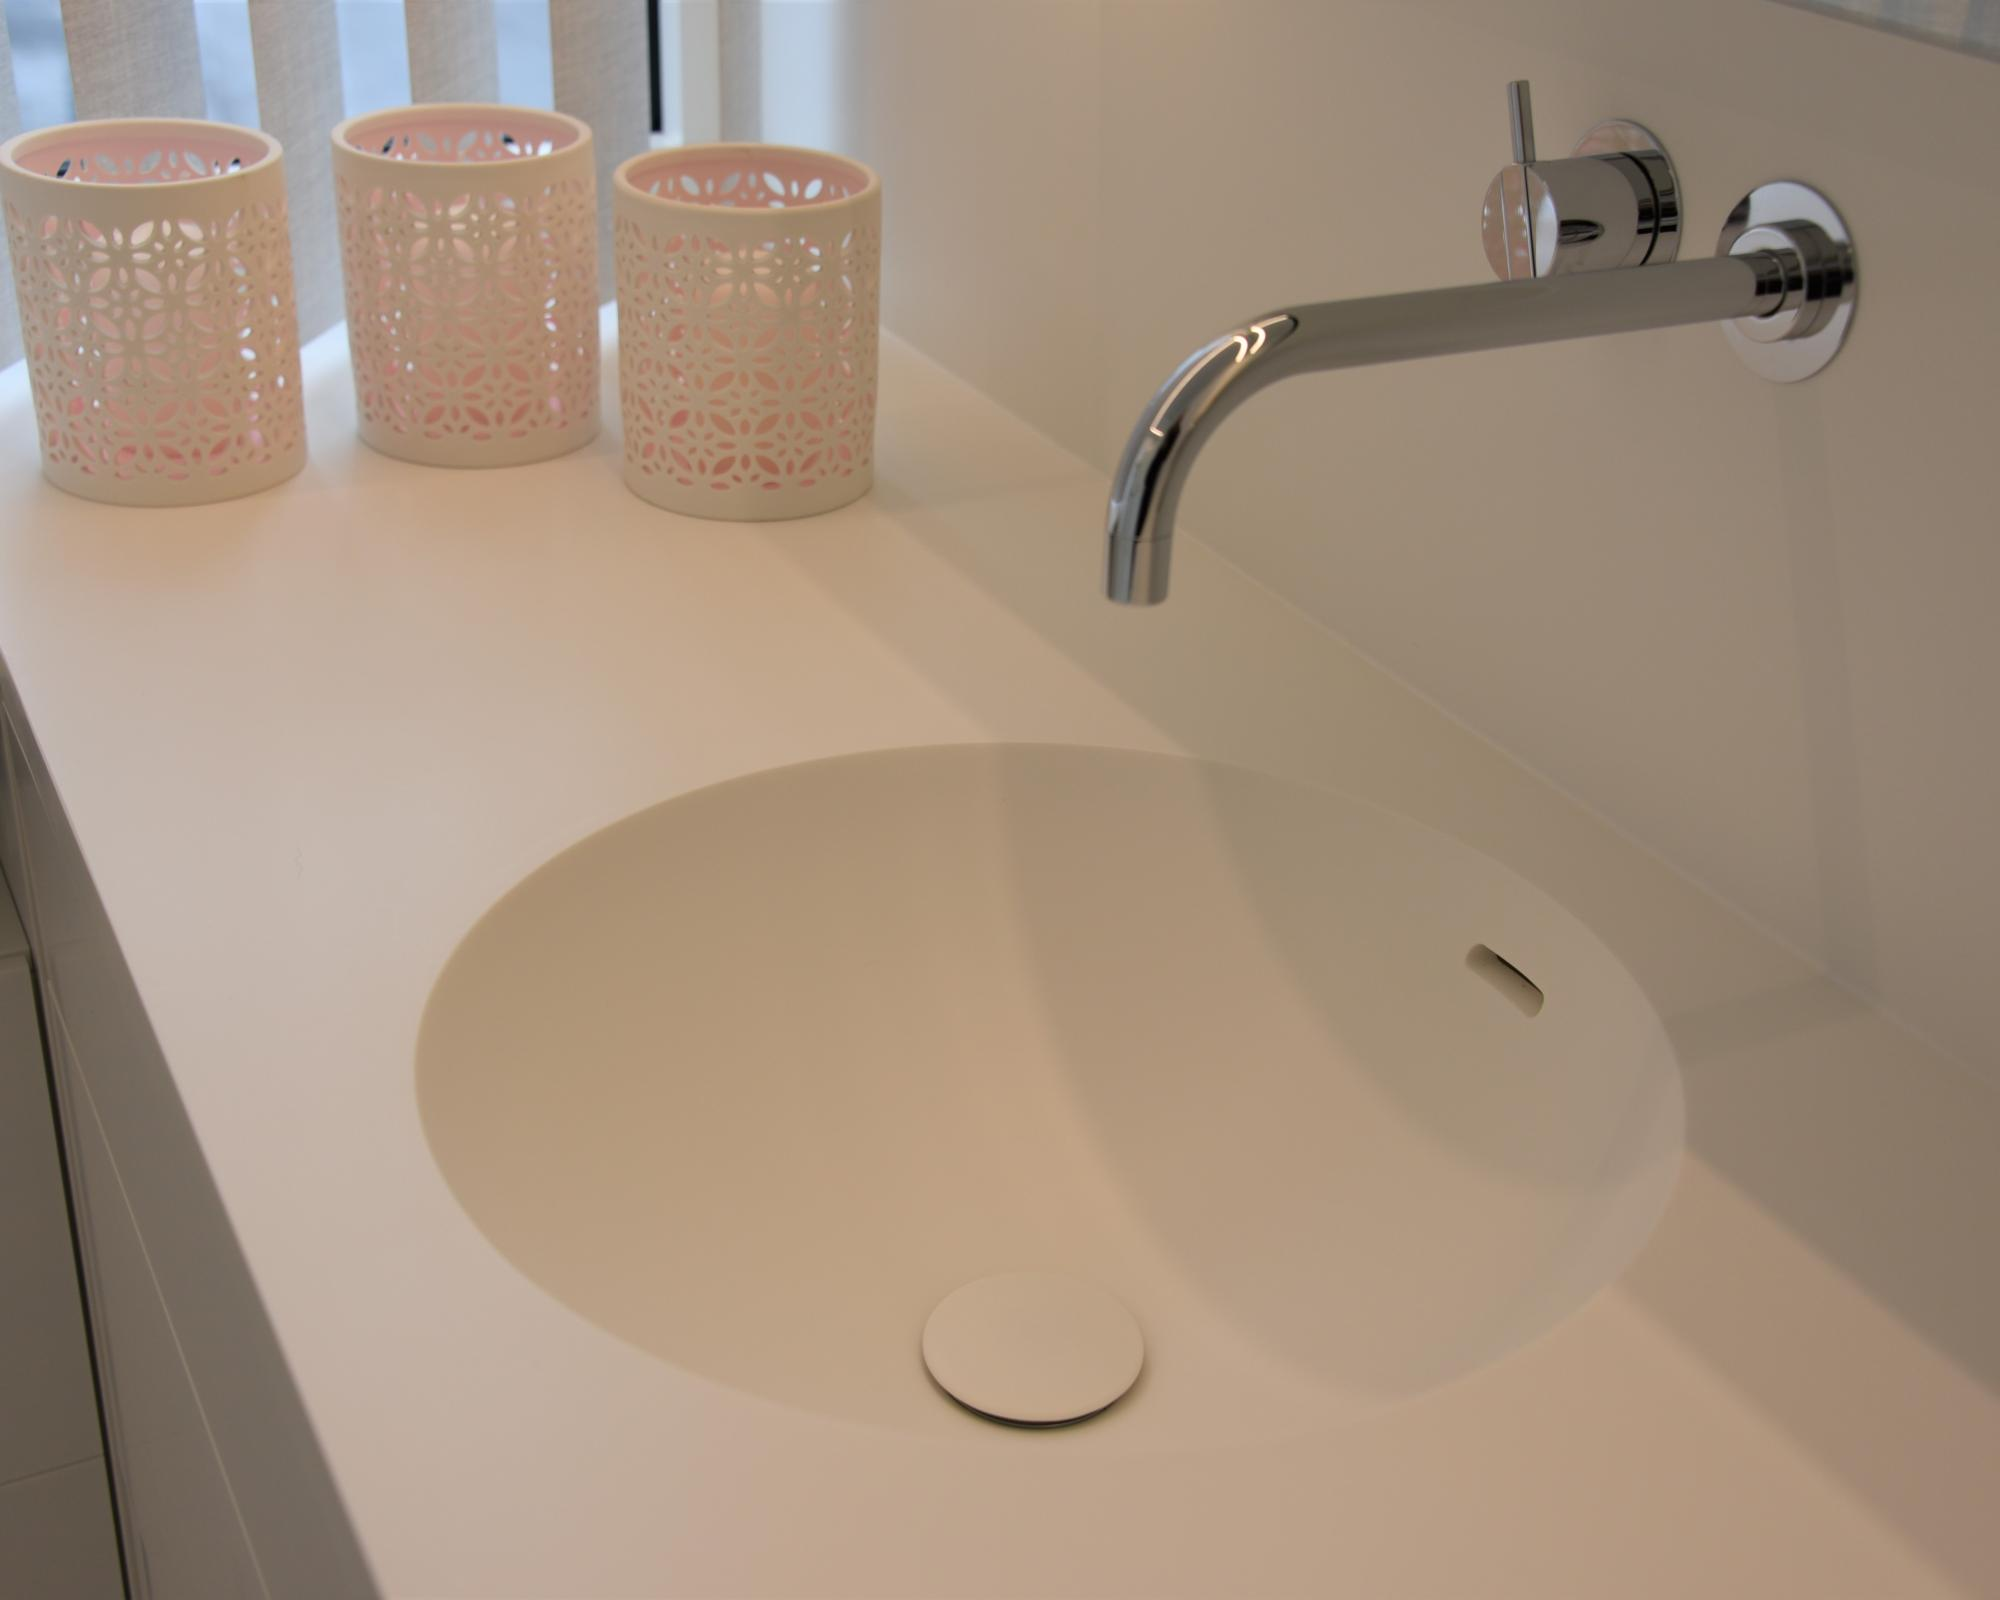 Bathroom | Mobitim - Corian Design